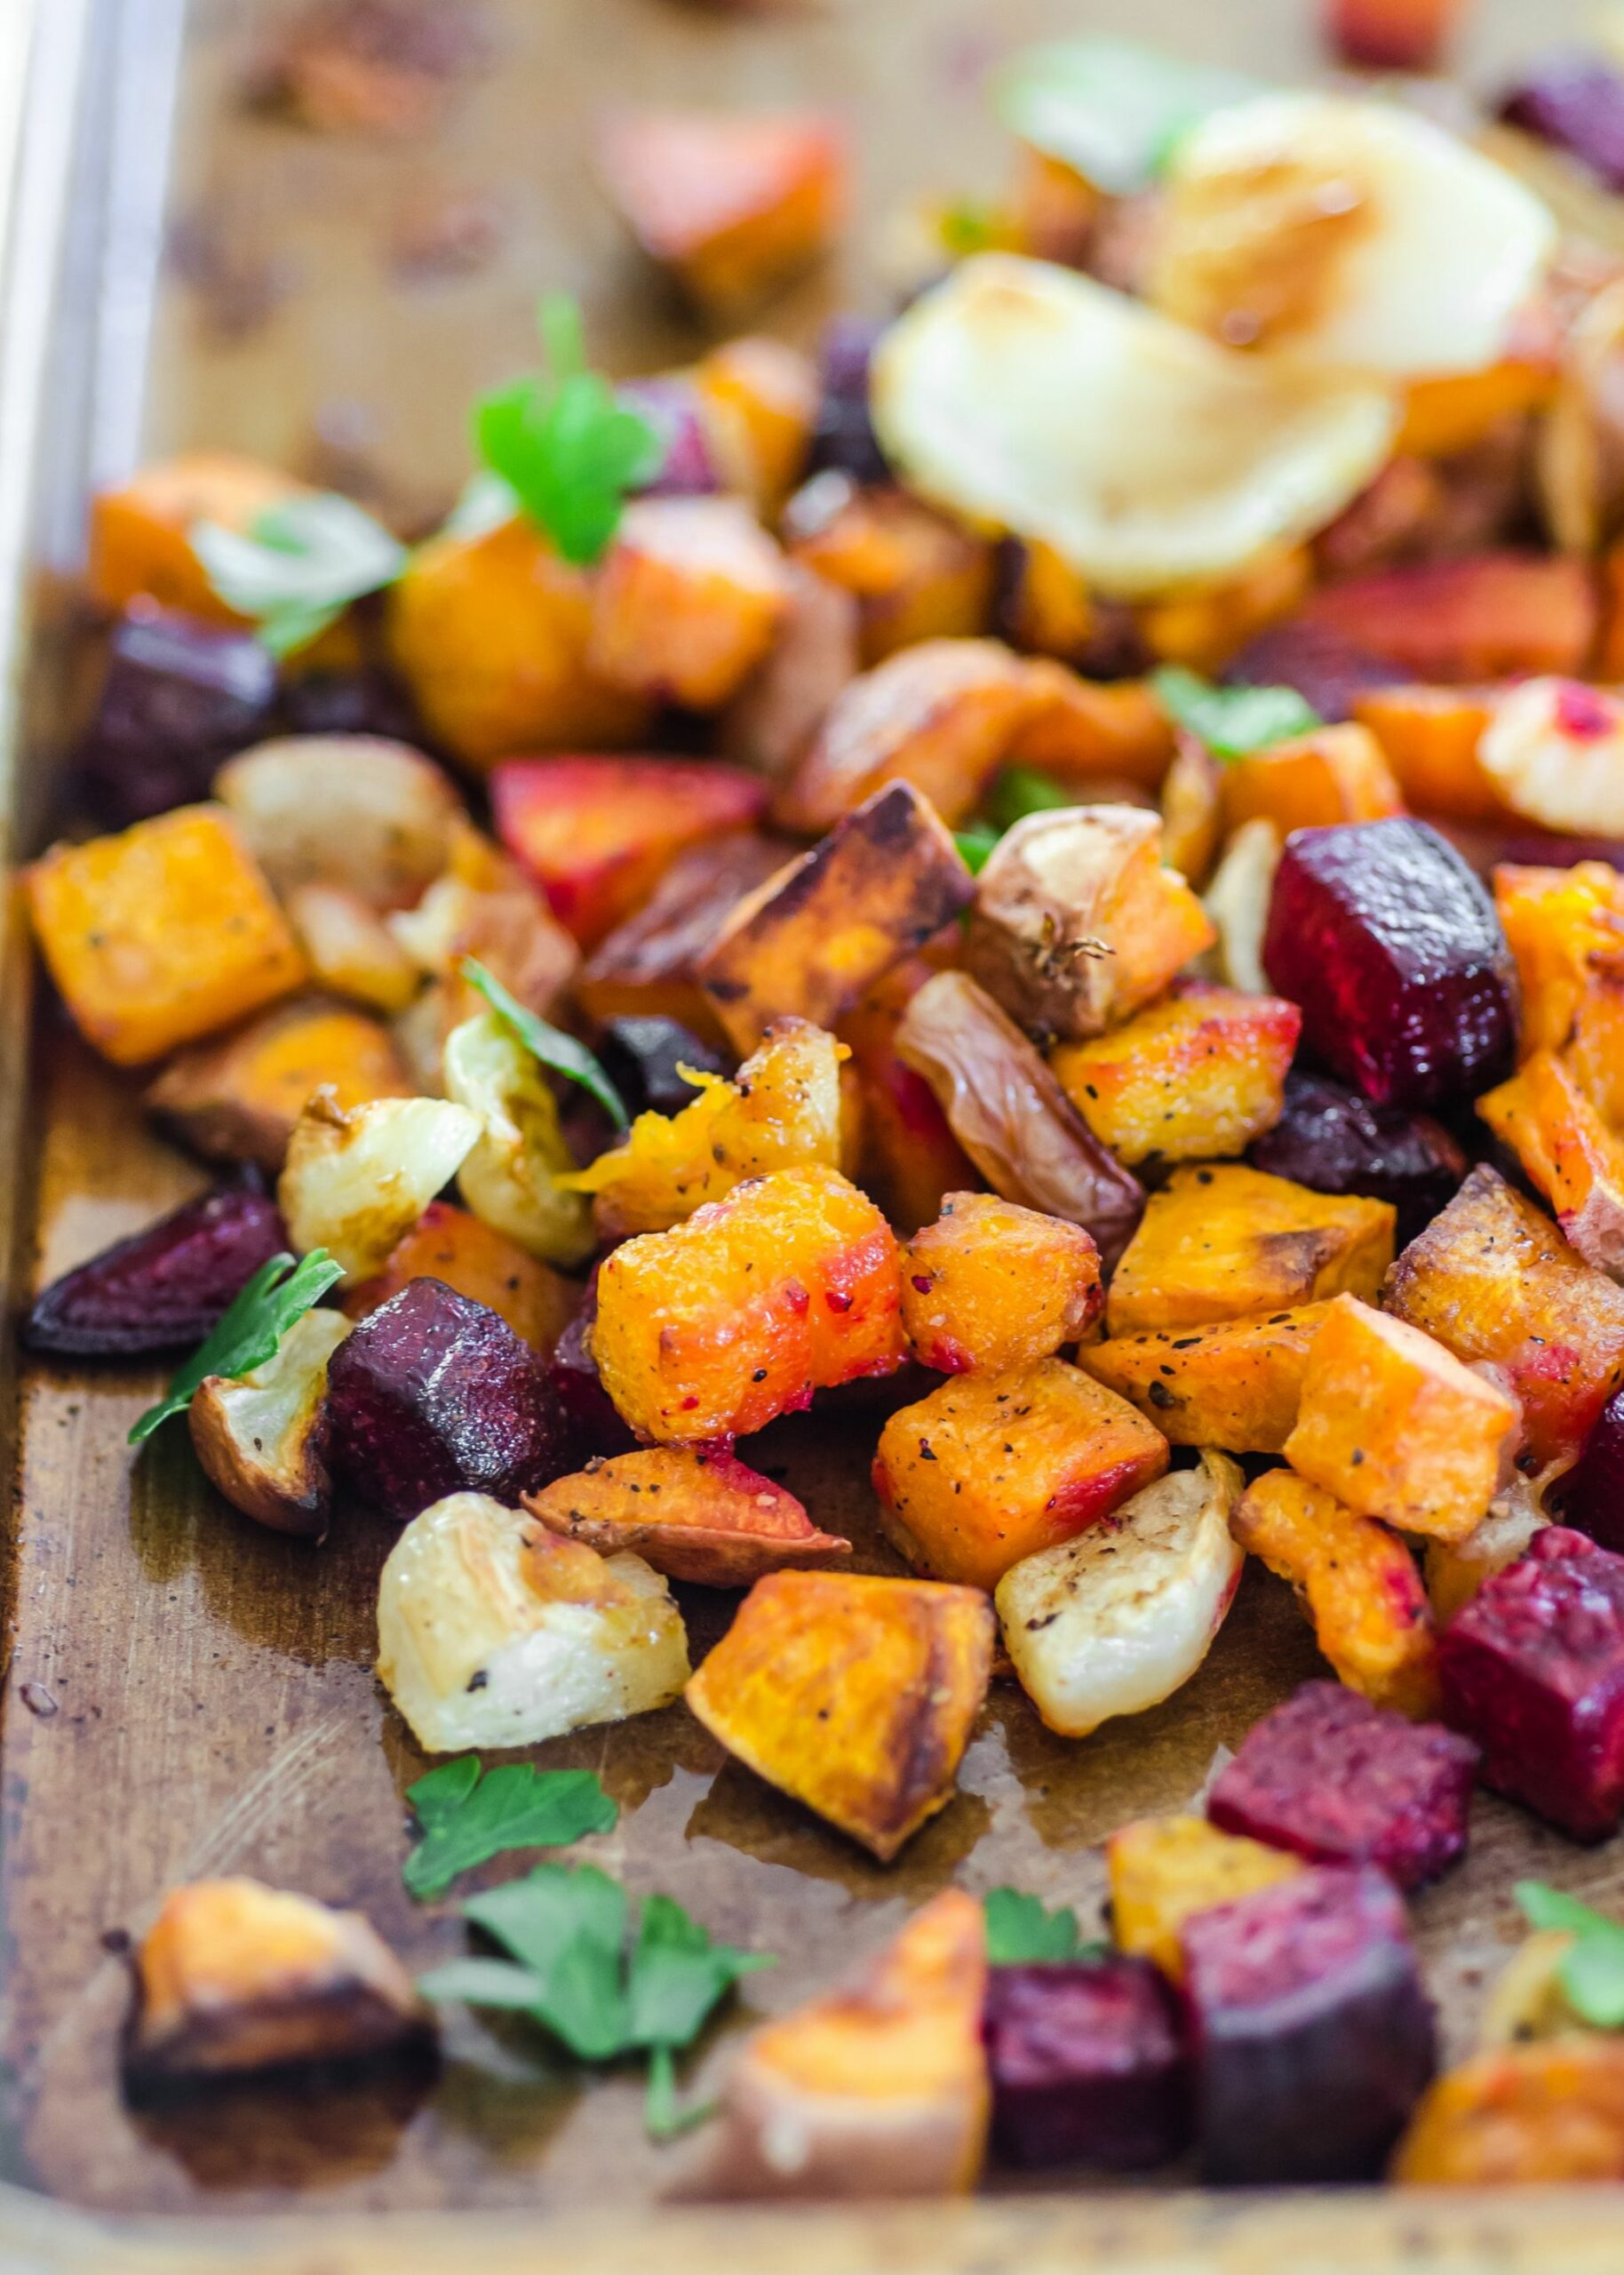 How To Roast Any Vegetable - Recipes Vegetables Oven